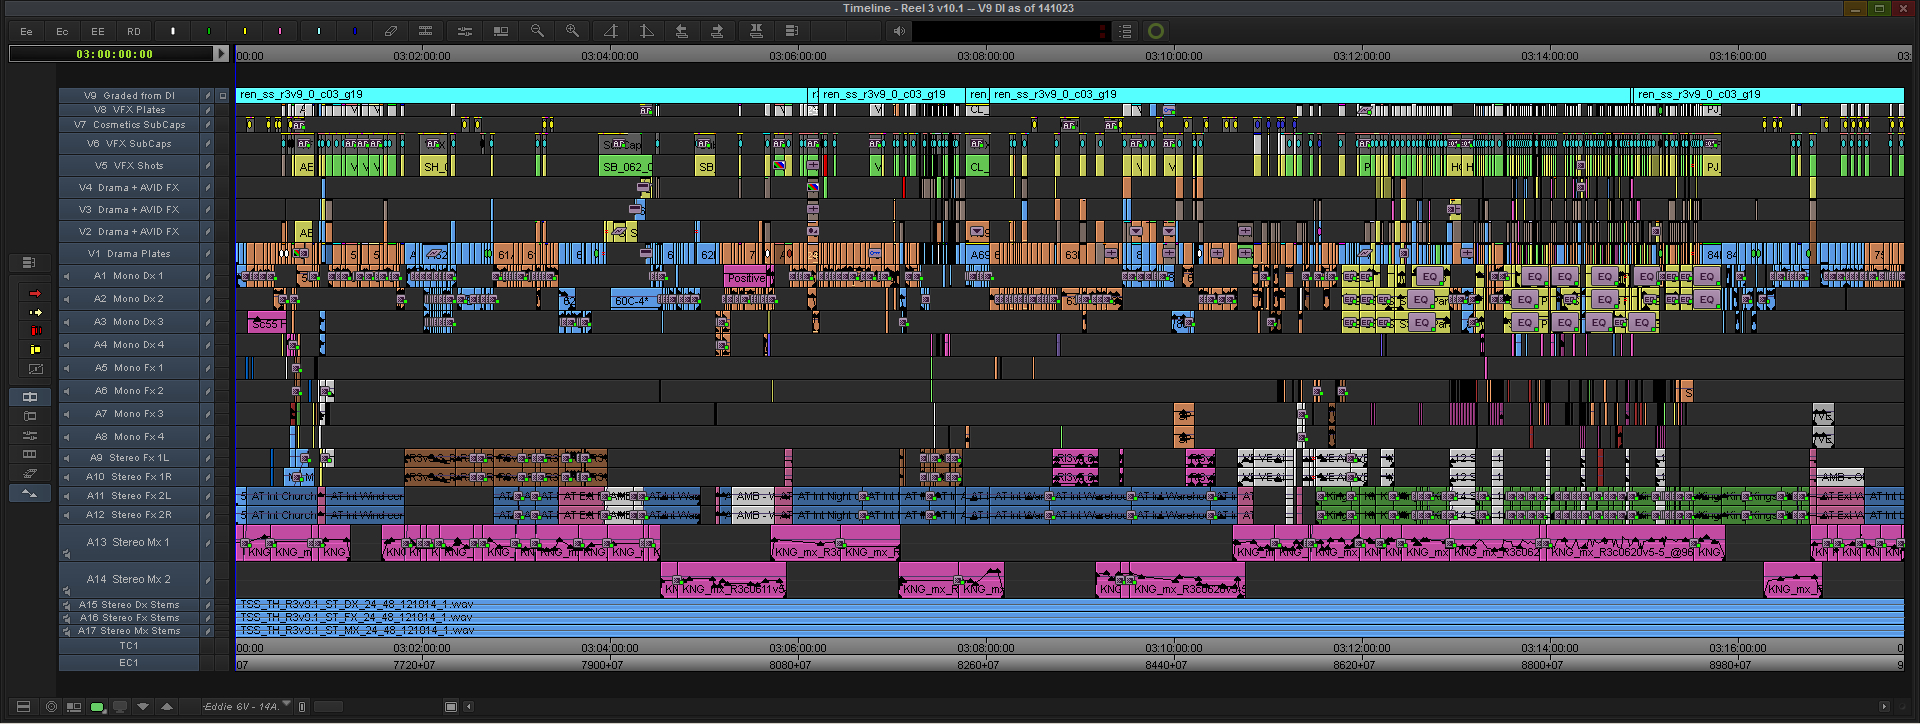 Kingsman-Final-Reel-3-Avid-MC-Timeline